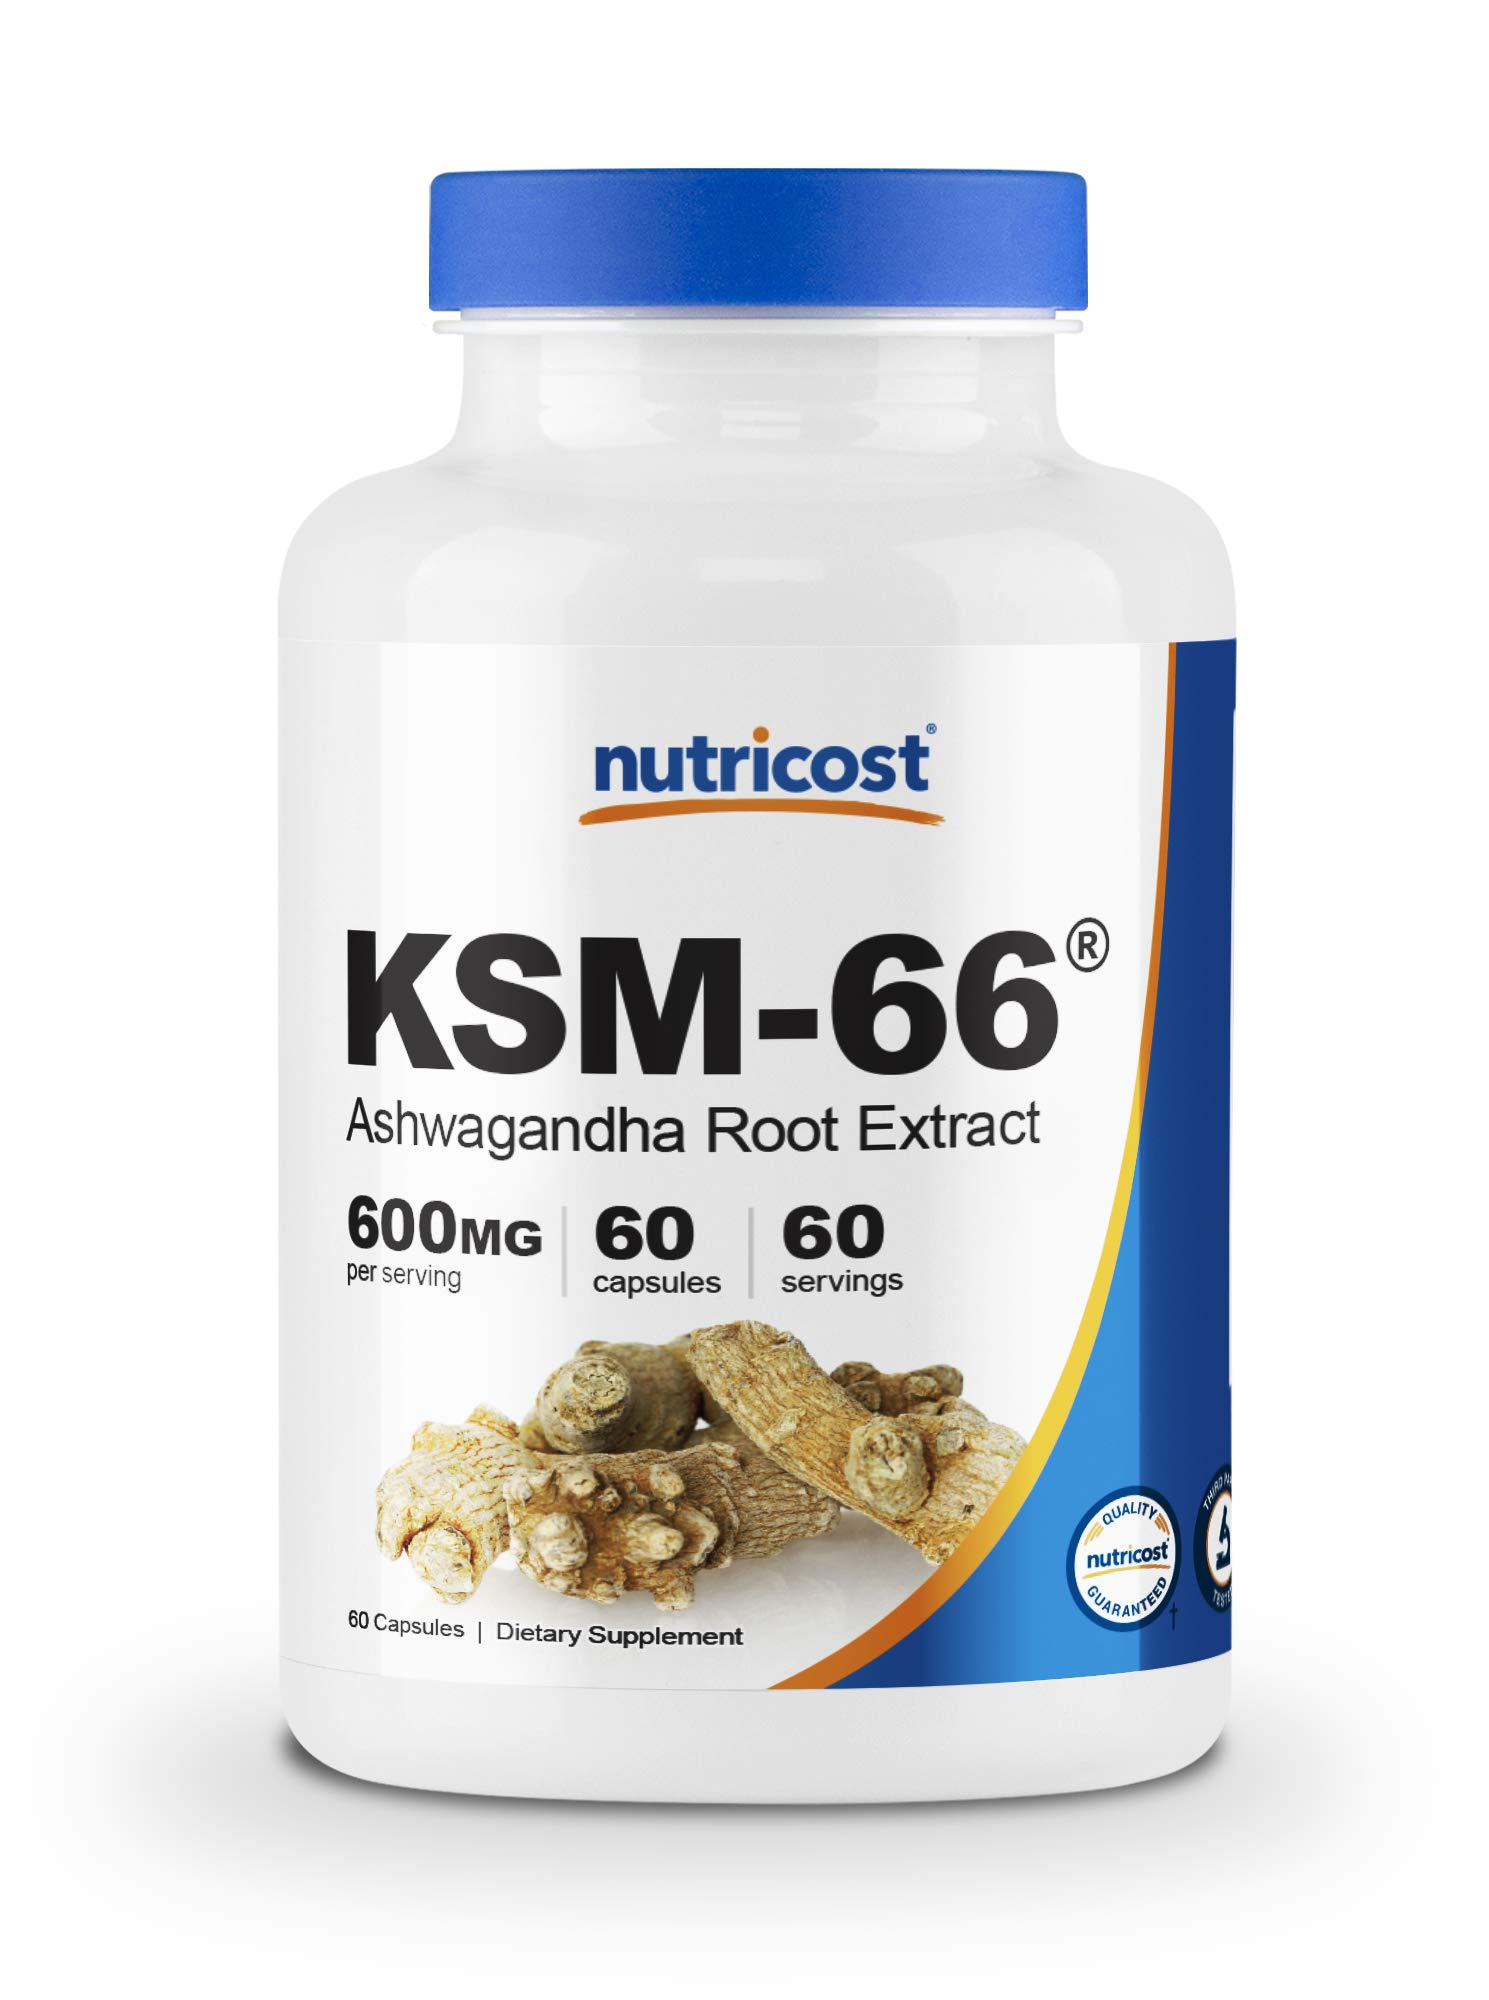 Nutricost KSM-66 Ashwagandha Root Extract 600mg, 60 Veggie Caps - High Potency 5% Withanolides - with BioPerine - Full-Spectrum Root Extract